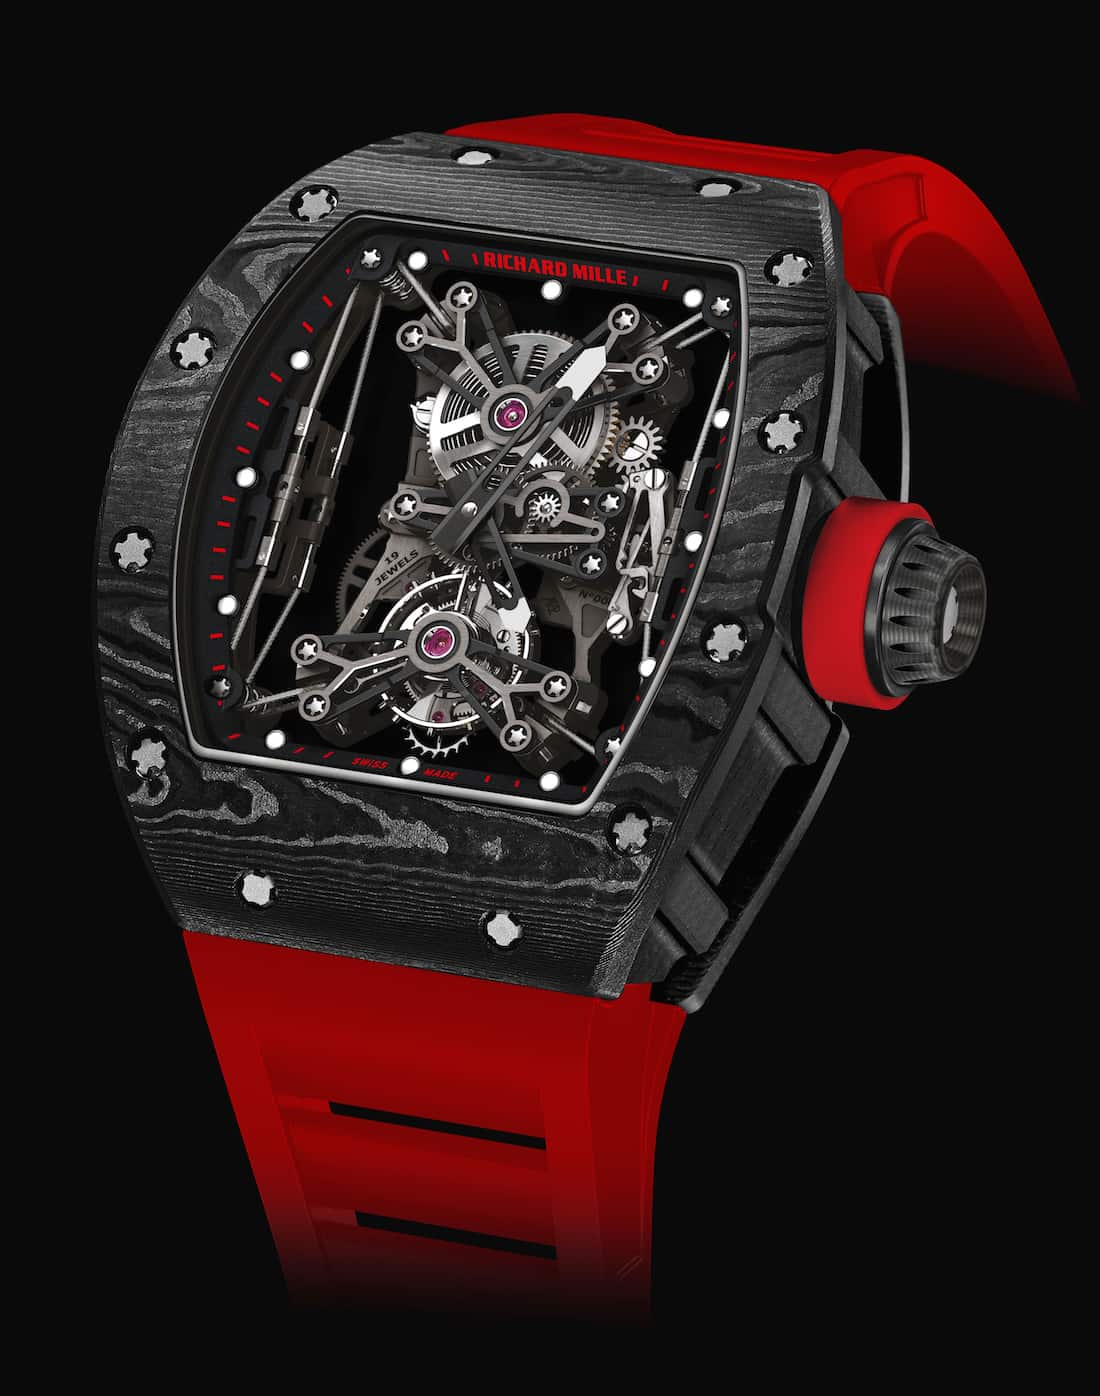 The Mindblowing Richard Mille RM 50-27-01 Suspended Tourbillon